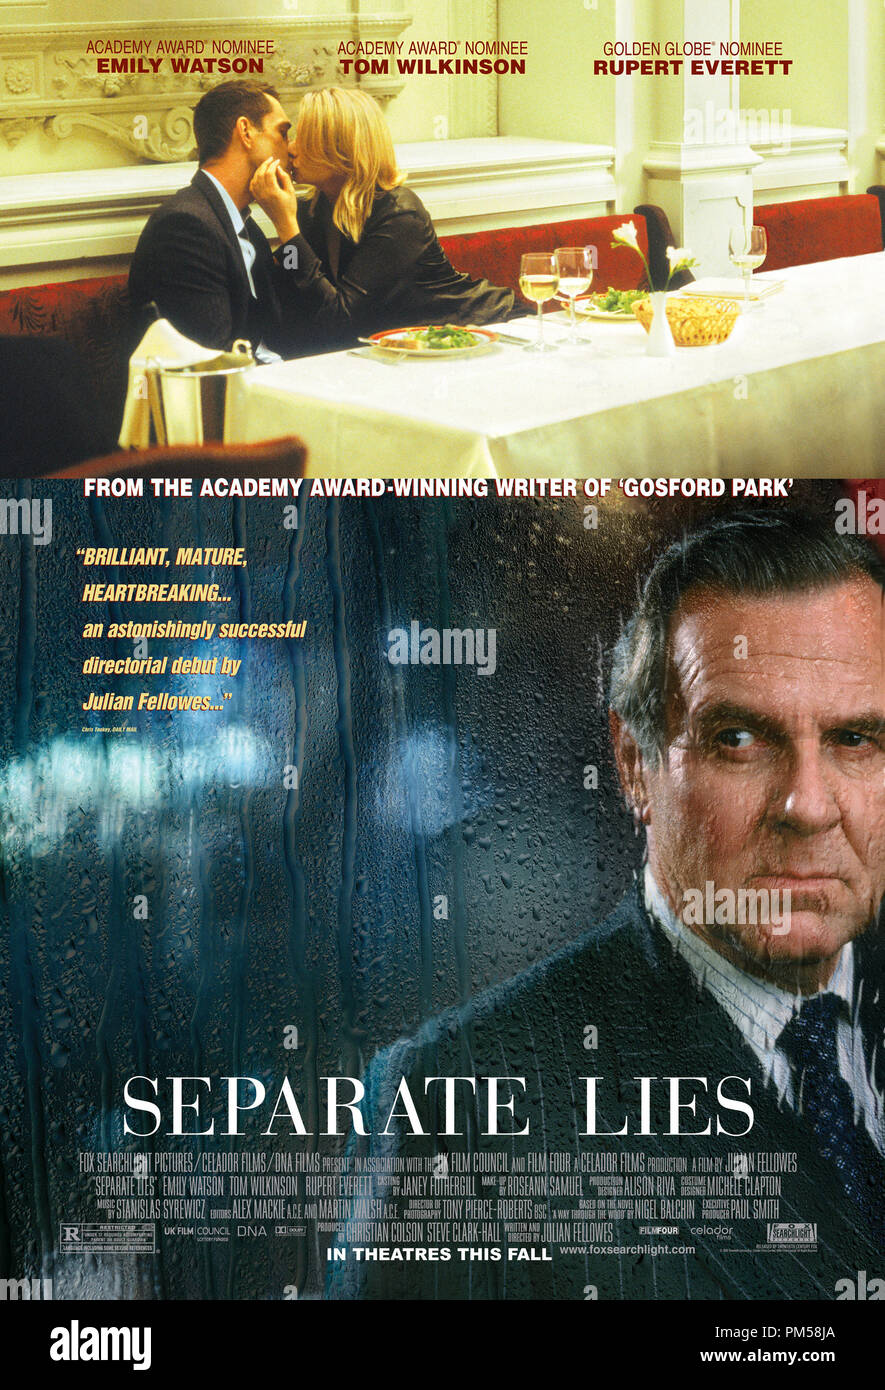 Poster Art from 'Separate Lies' Poster © 2005 Twentieth Century Fox   File Reference # 30736179THA  For Editorial Use Only -  All Rights Reserved - Stock Image